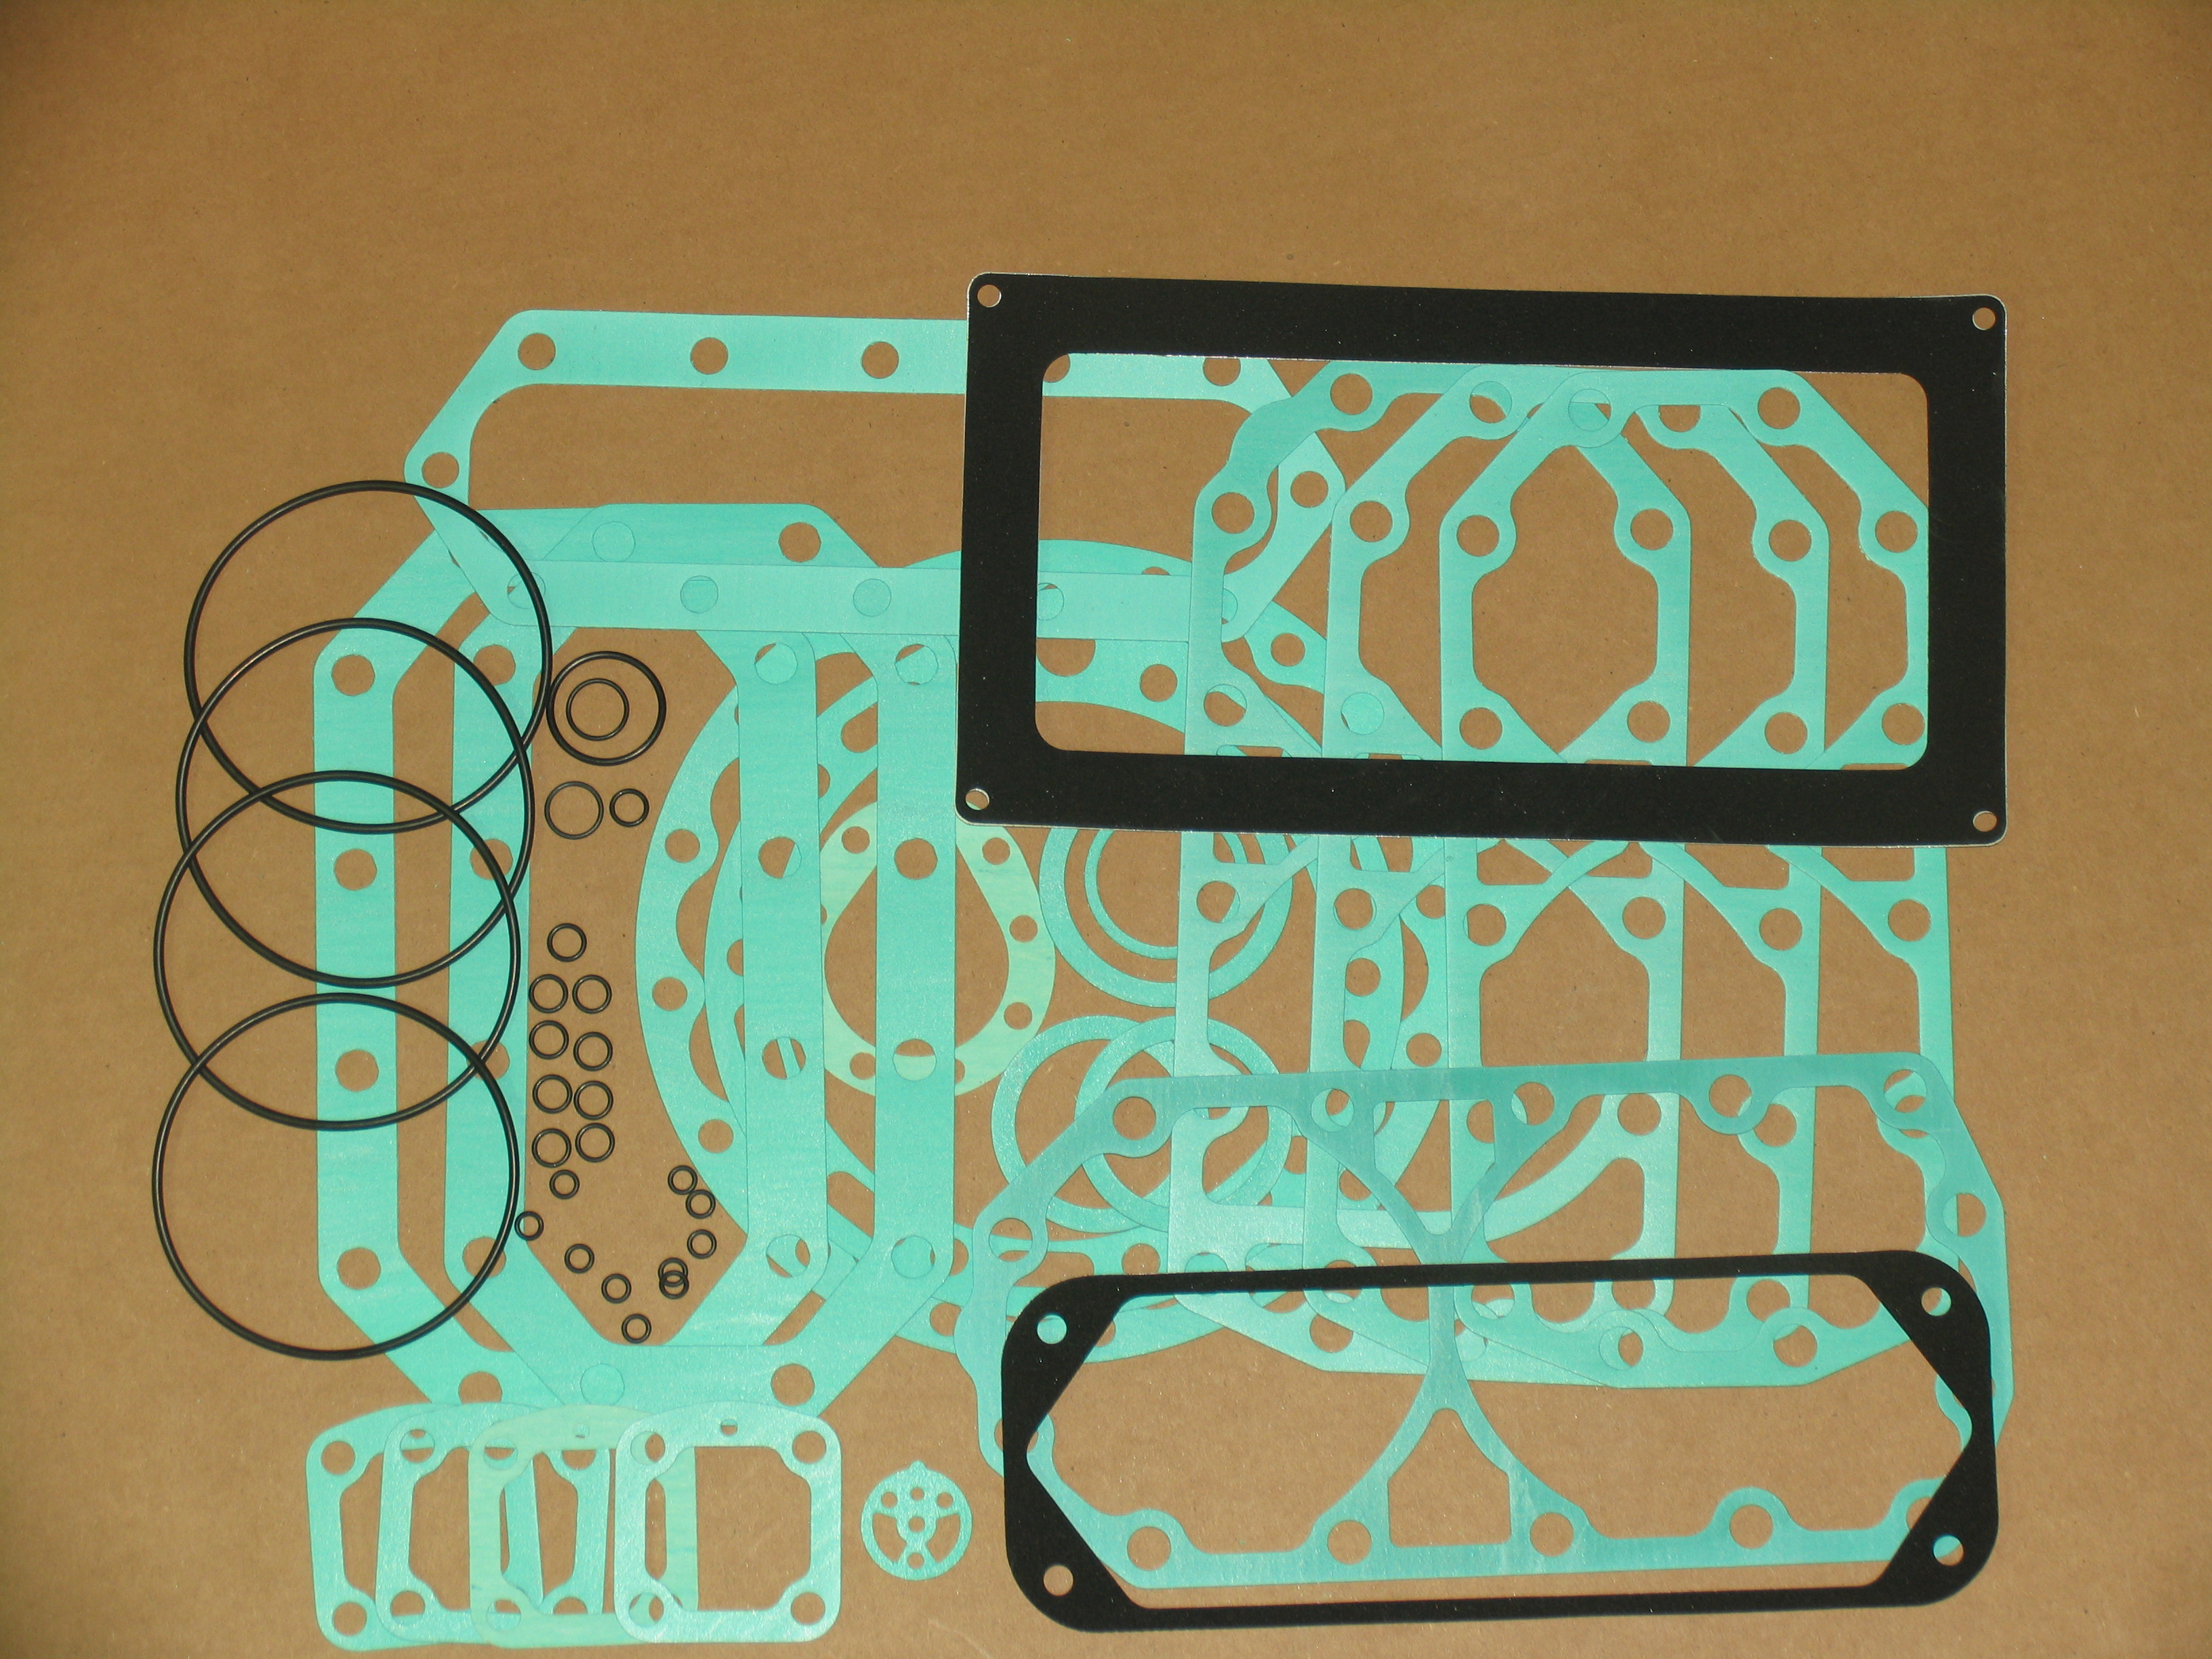 KIT-6303 Gasket Kit; R/N Kit 543 Kit 2068 (Made in the USA)